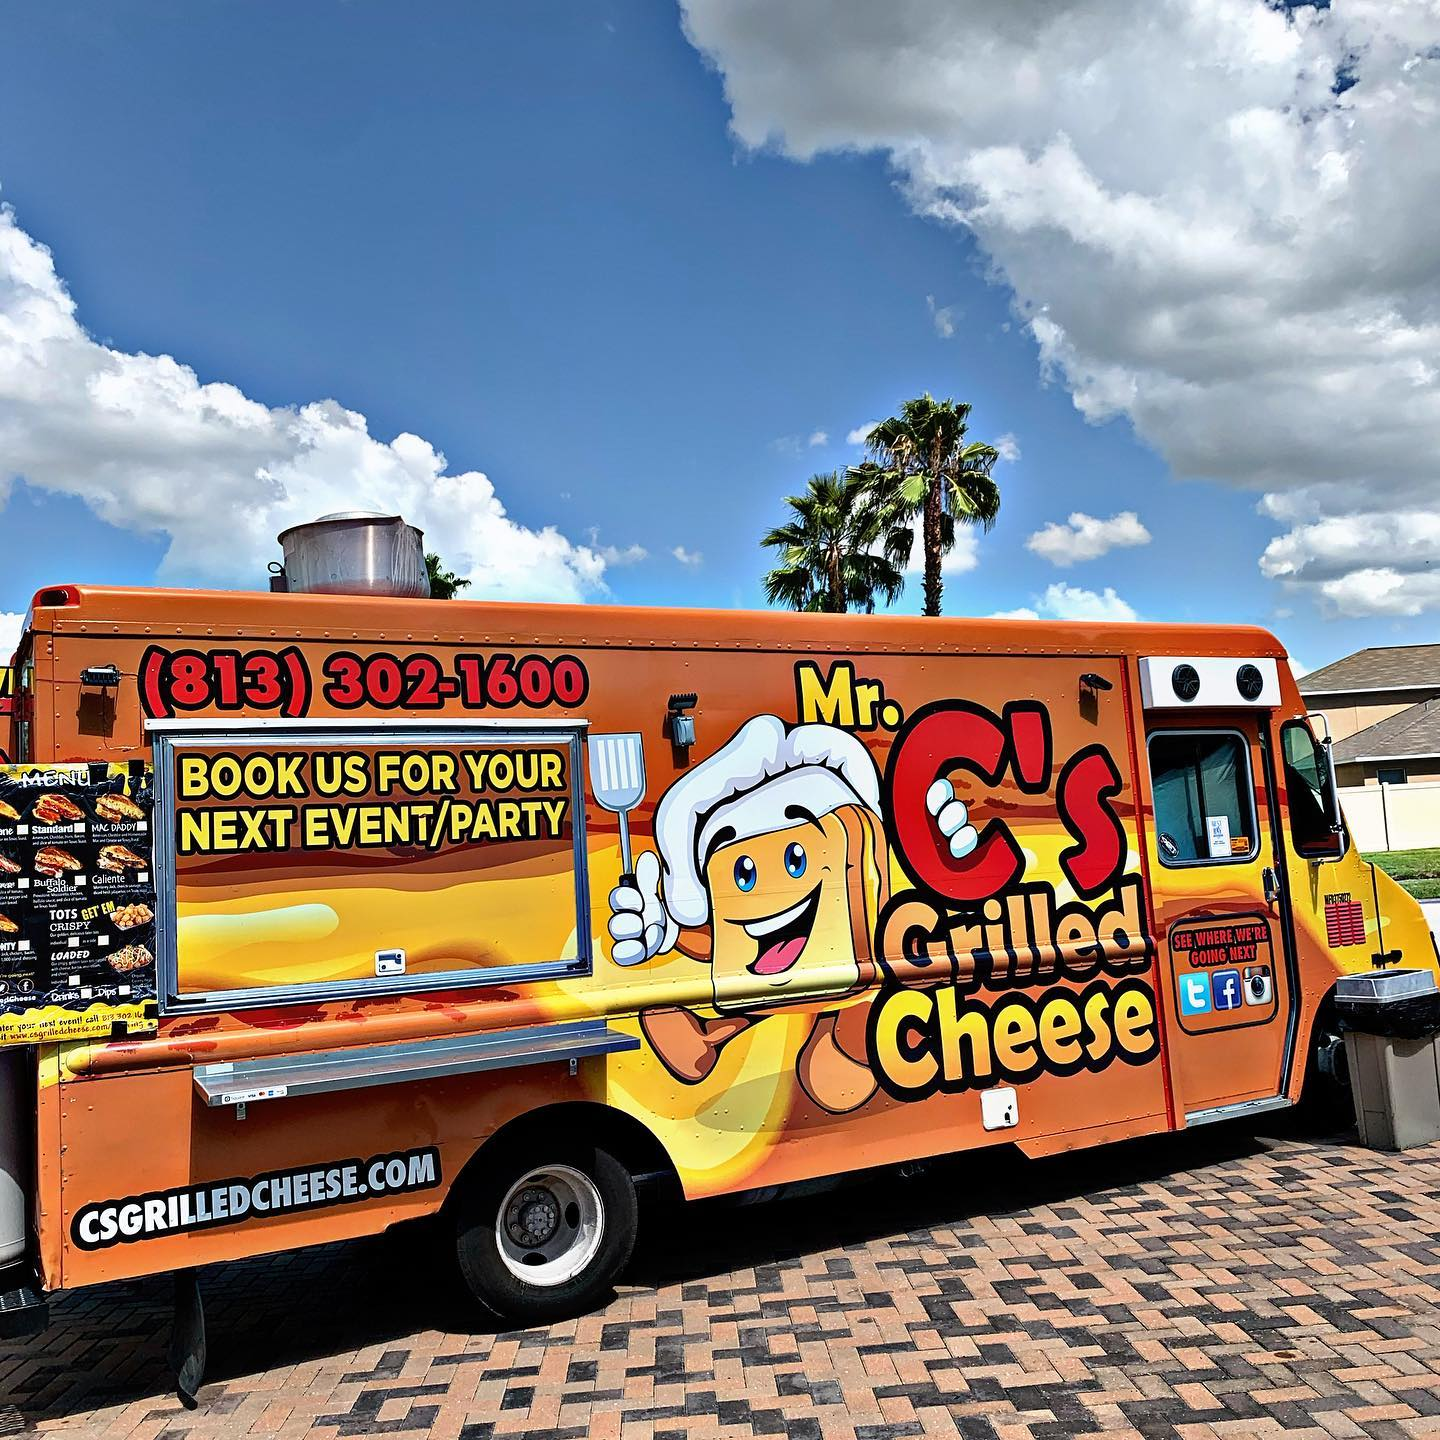 Mr. C's Grilled Cheese Food Truck